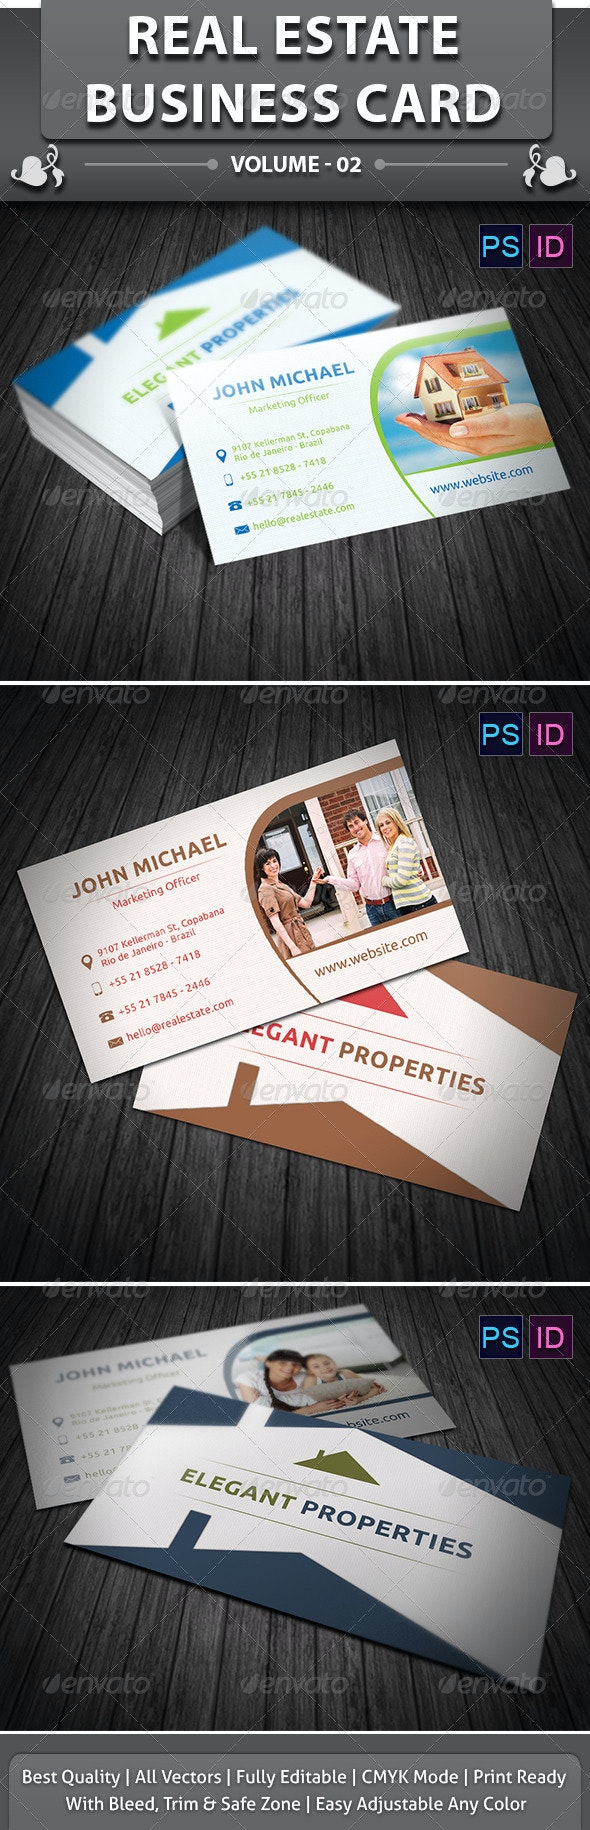 Real Estate Business Card v2 - Corporate Business Cards